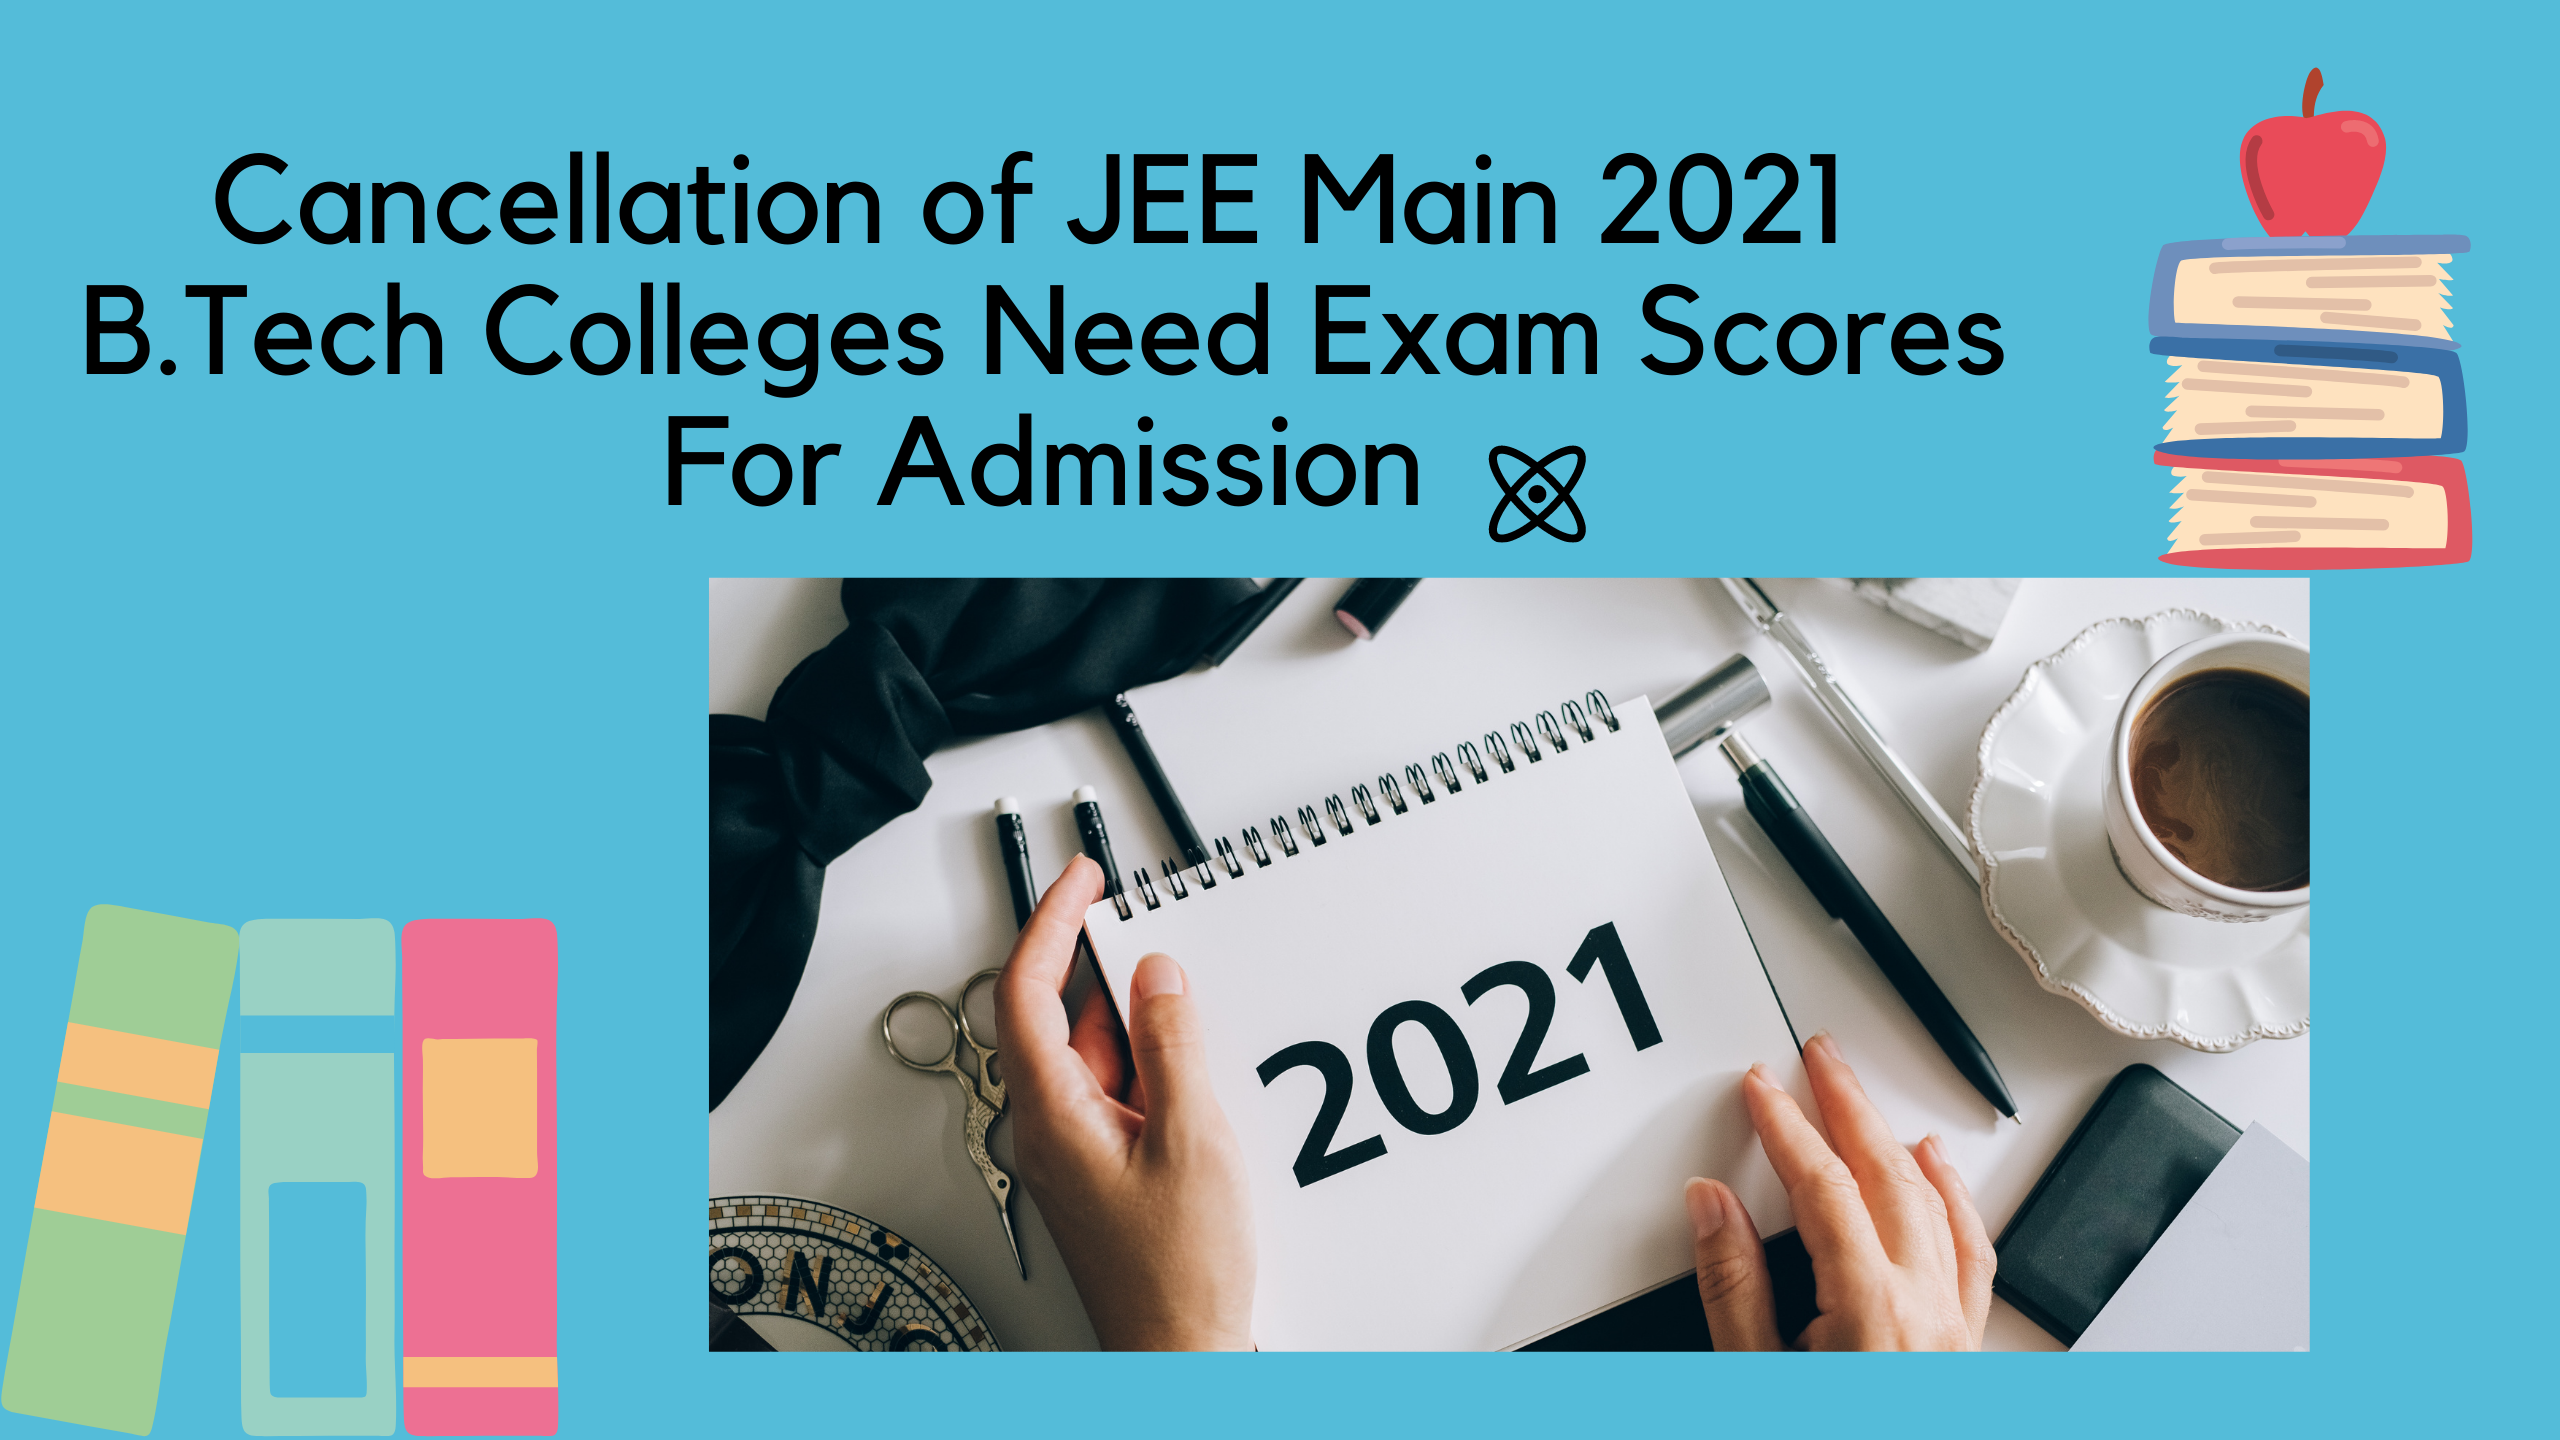 Cancellation of JEE Main 2021